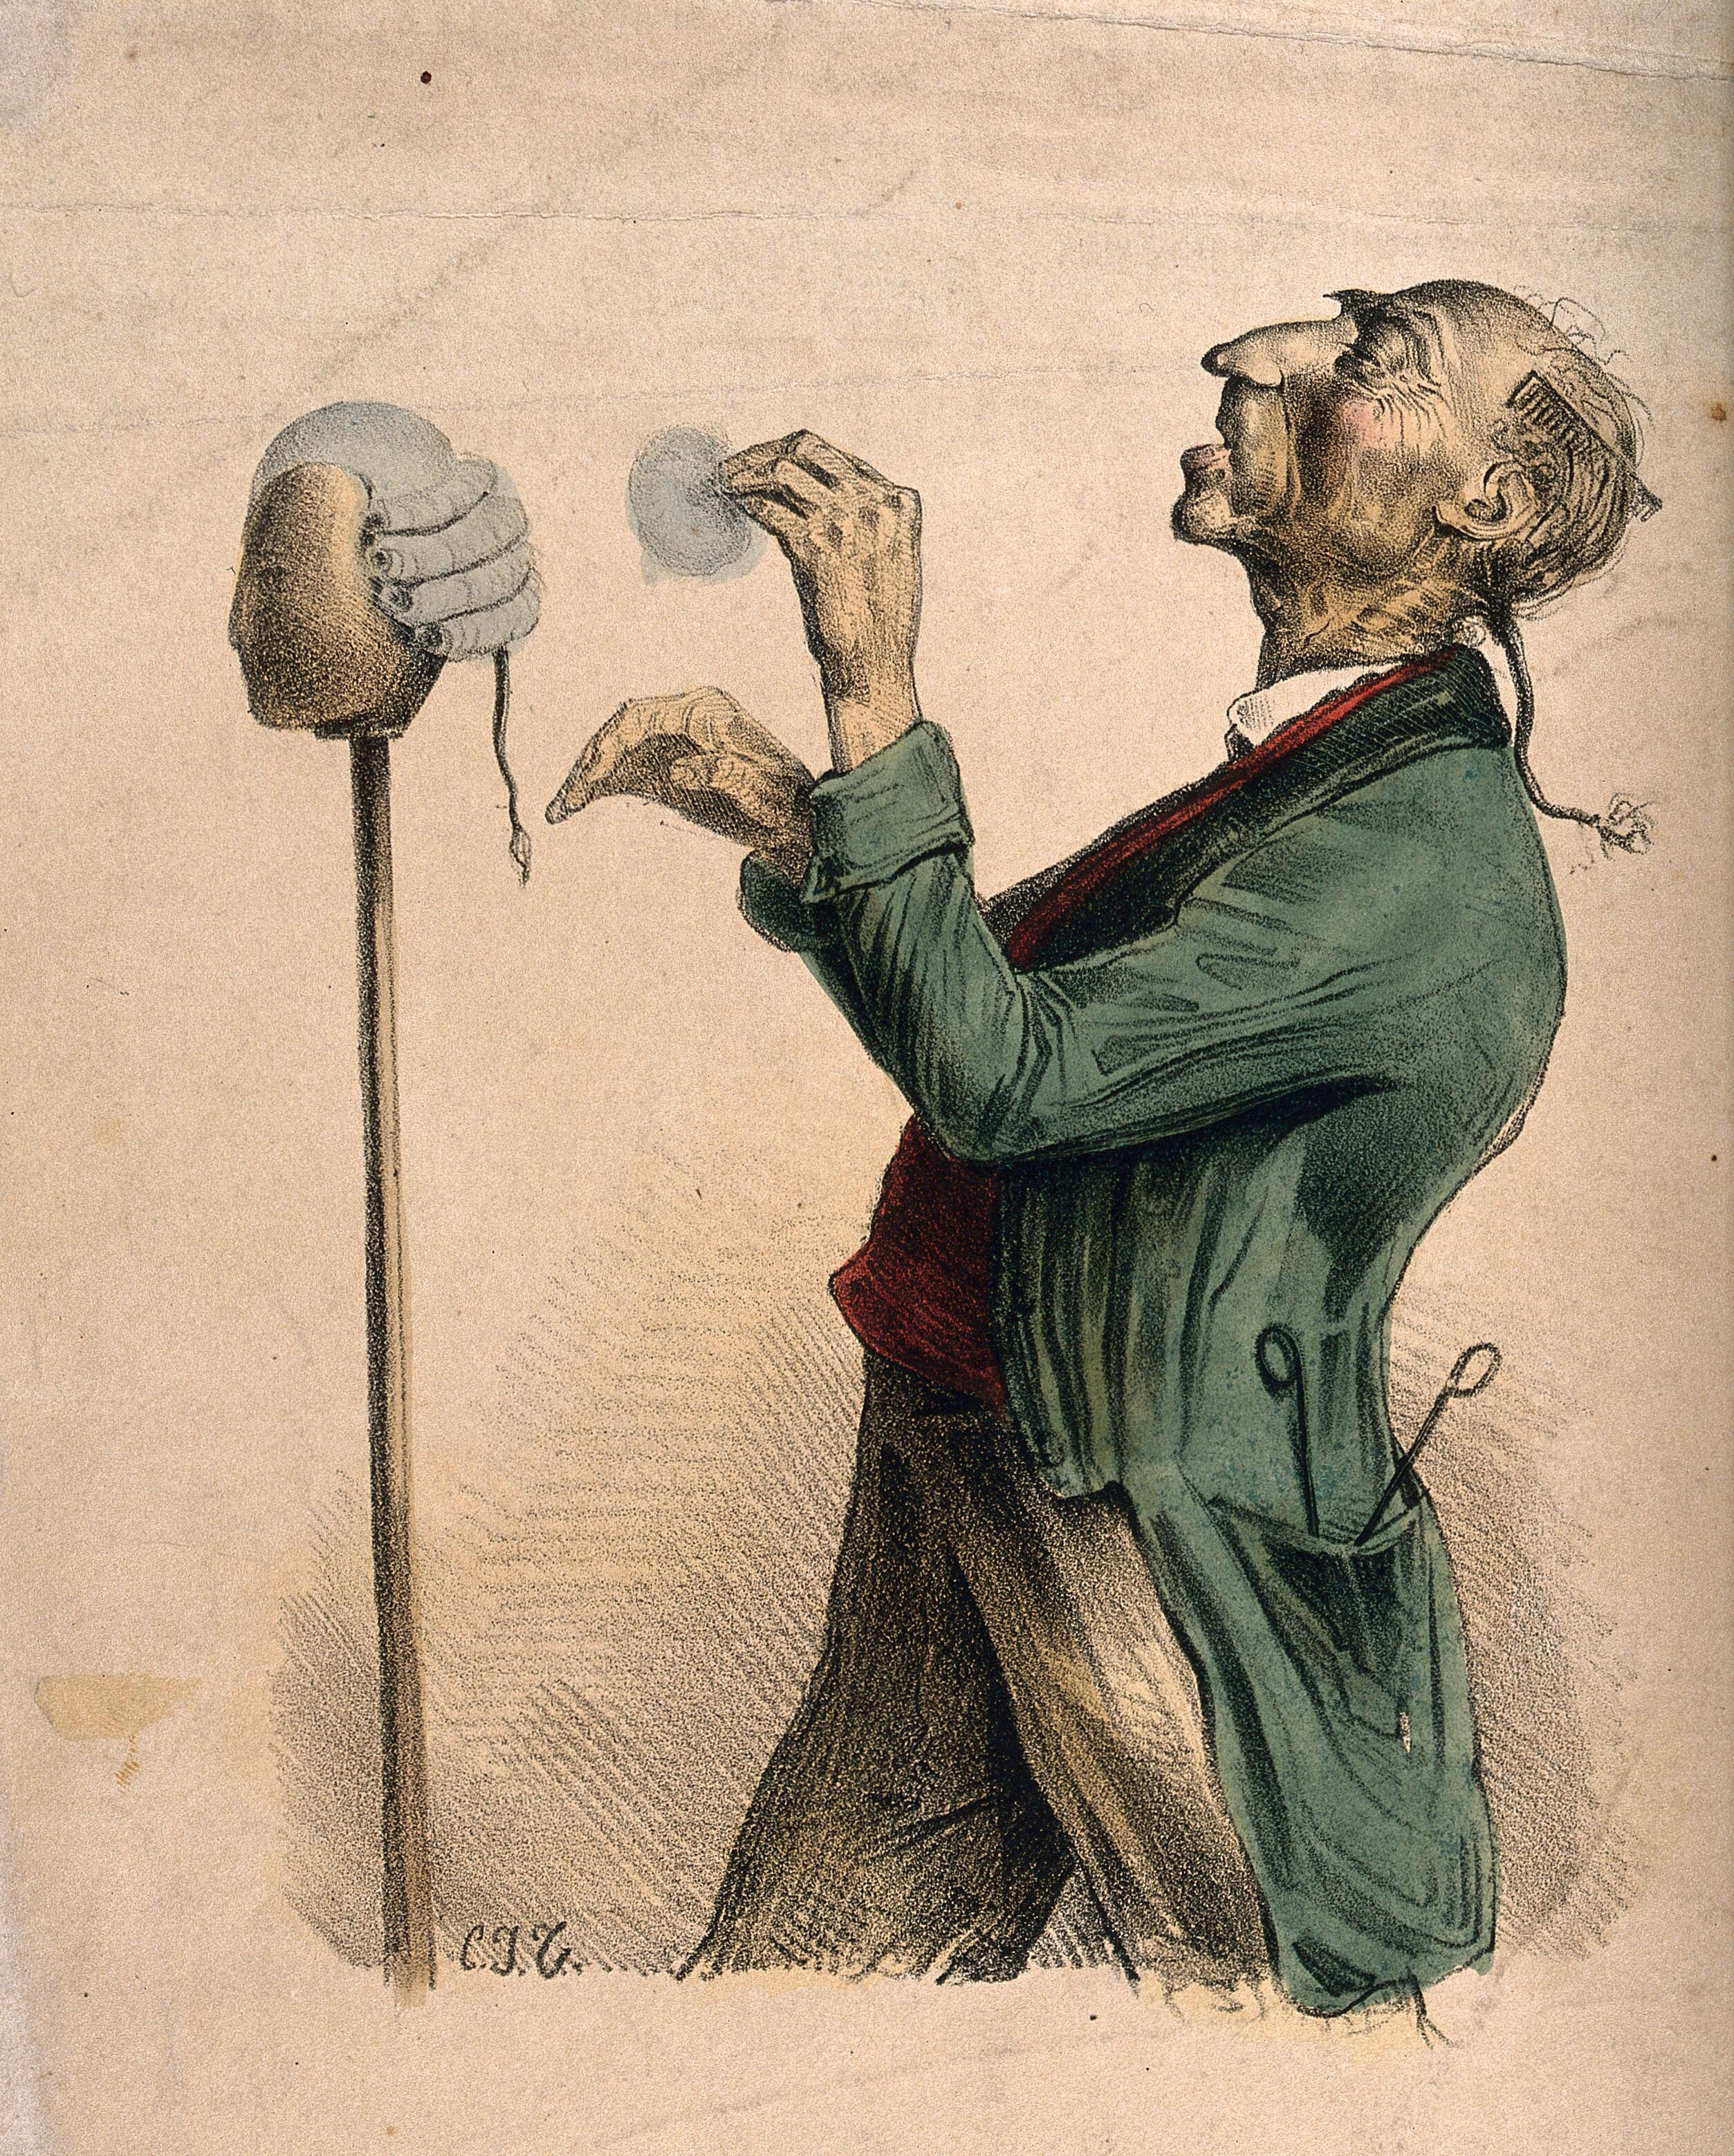 7a51638c0a5da4 A barber powdering a wig on a stand. Coloured lithograph by C.J. ...